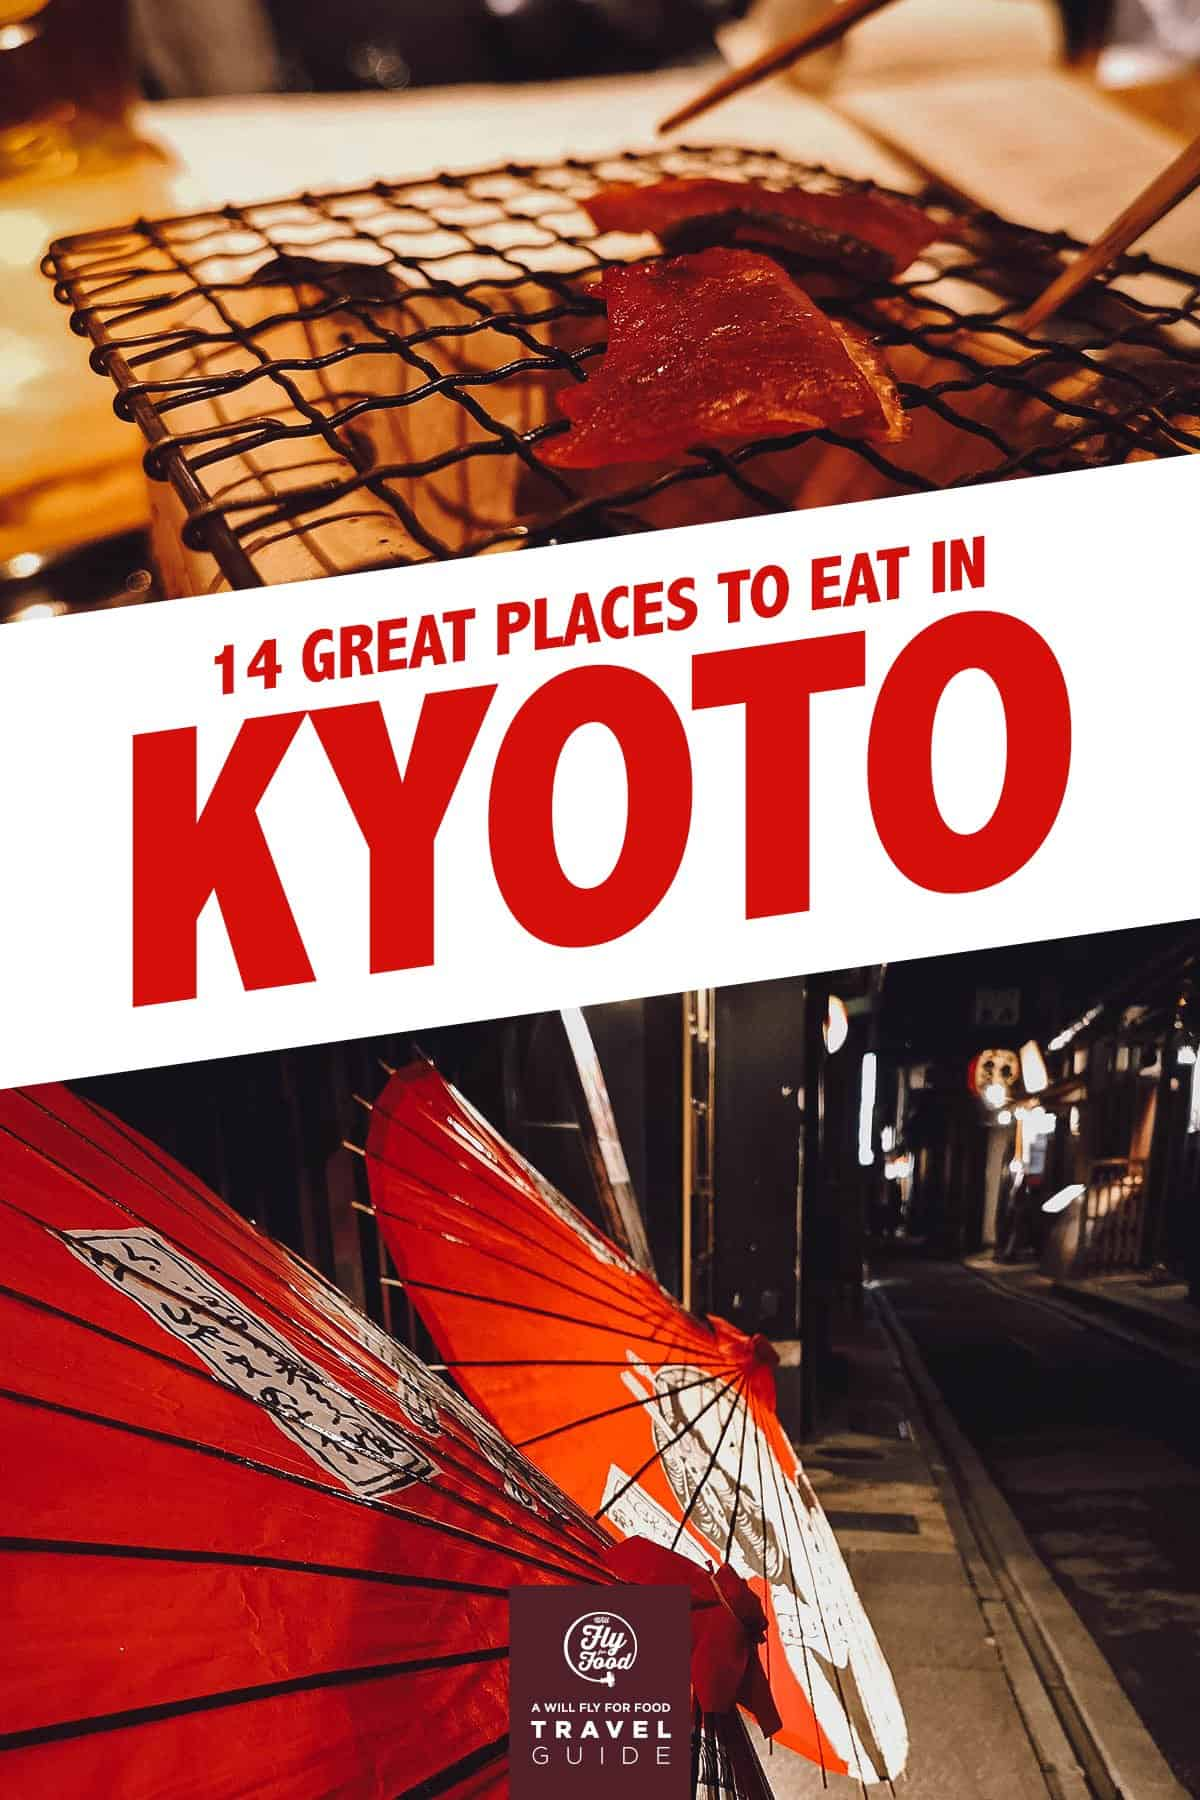 Scenes from Kyoto